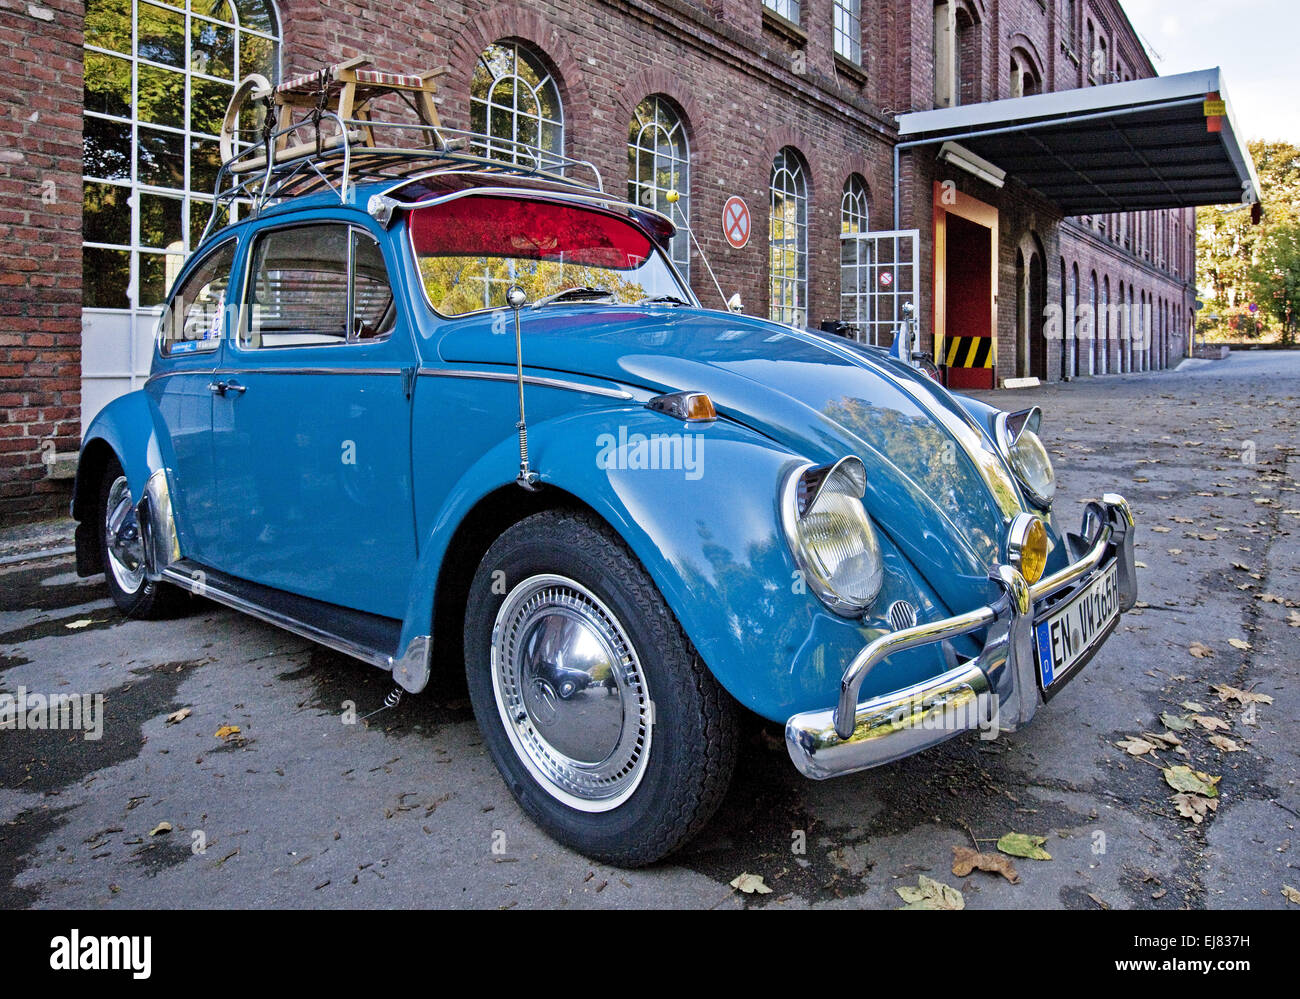 Classic car Volkswagen Beetle, Germany - Stock Image